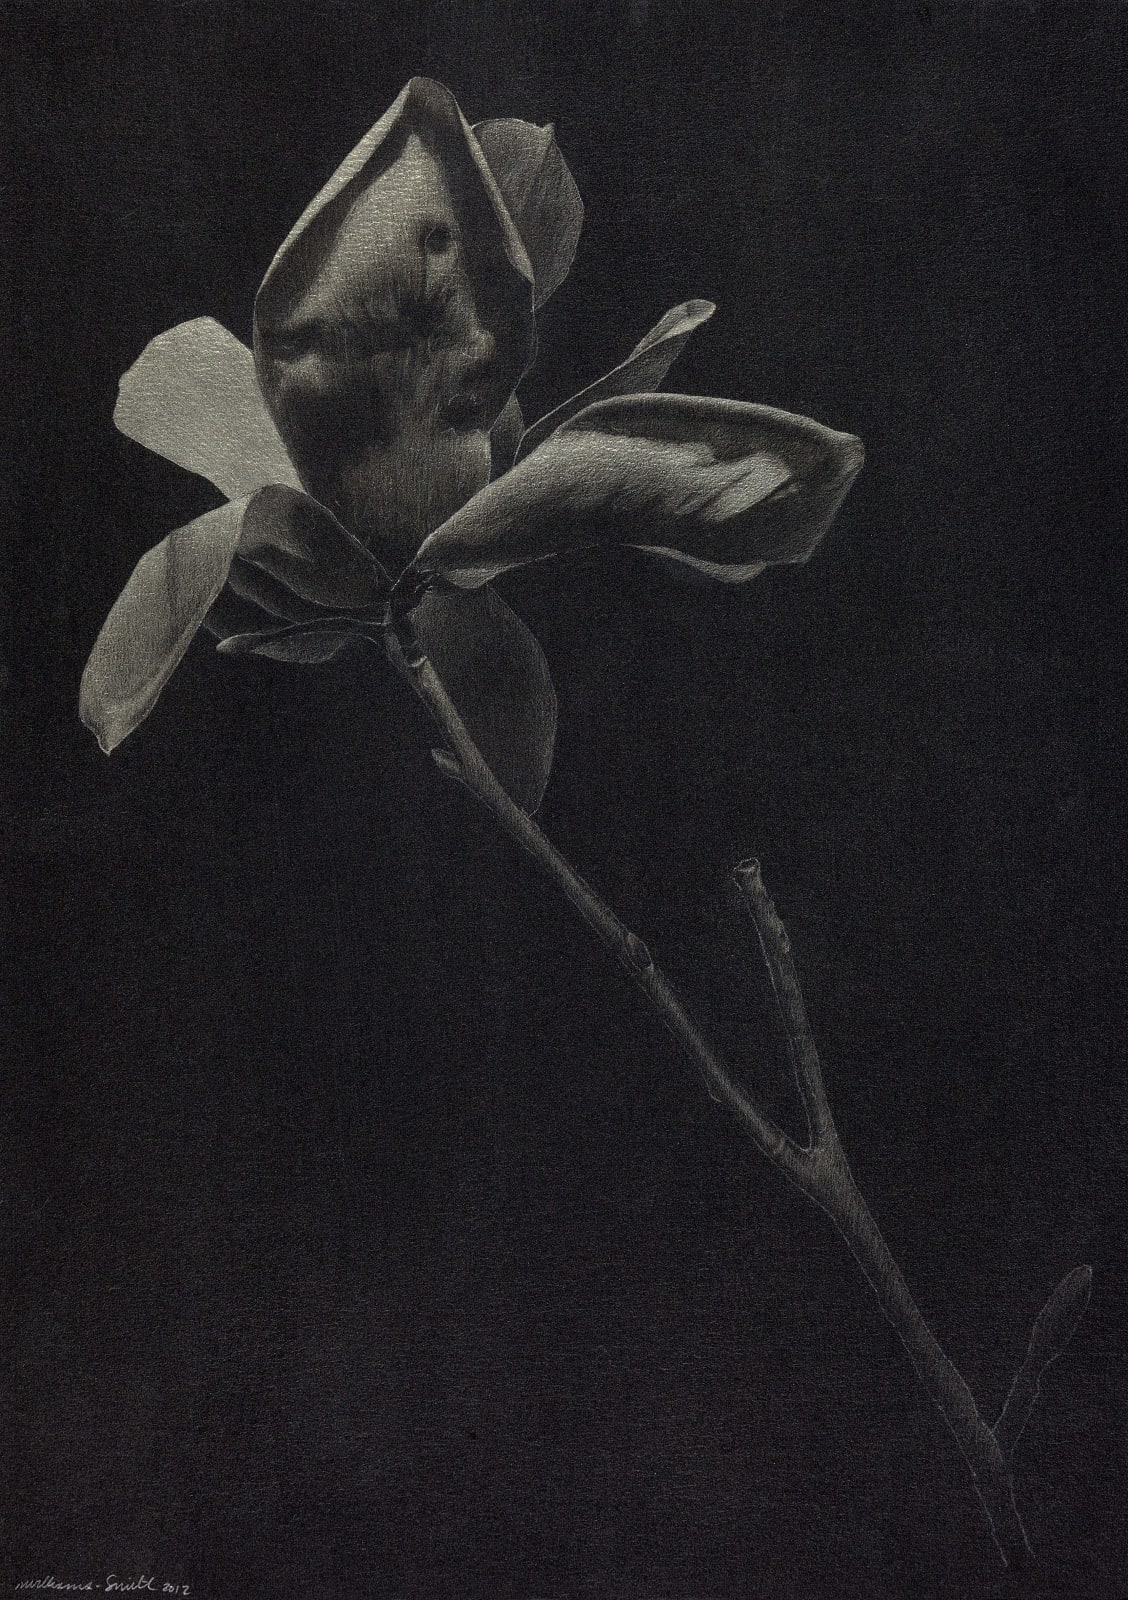 Marjorie Williams-Smith, Uplifted, 2012